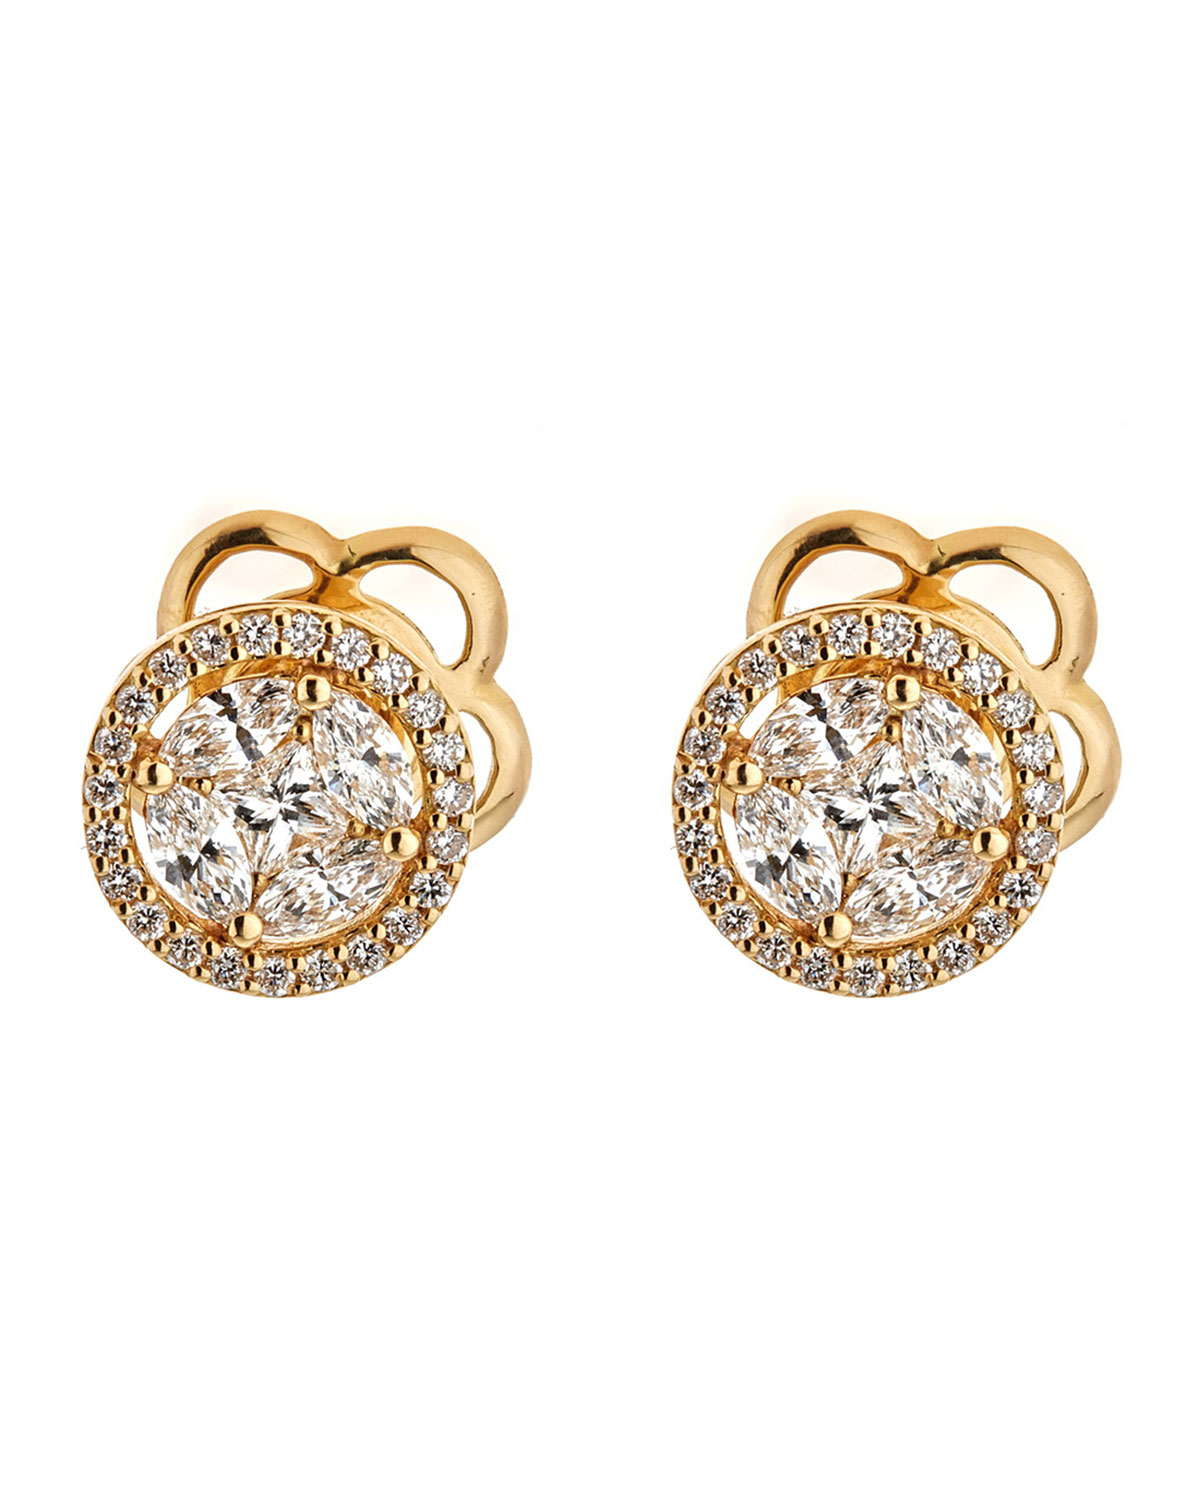 ZYDO Mosaic 18K Gold & Diamond Round Stud Earrings